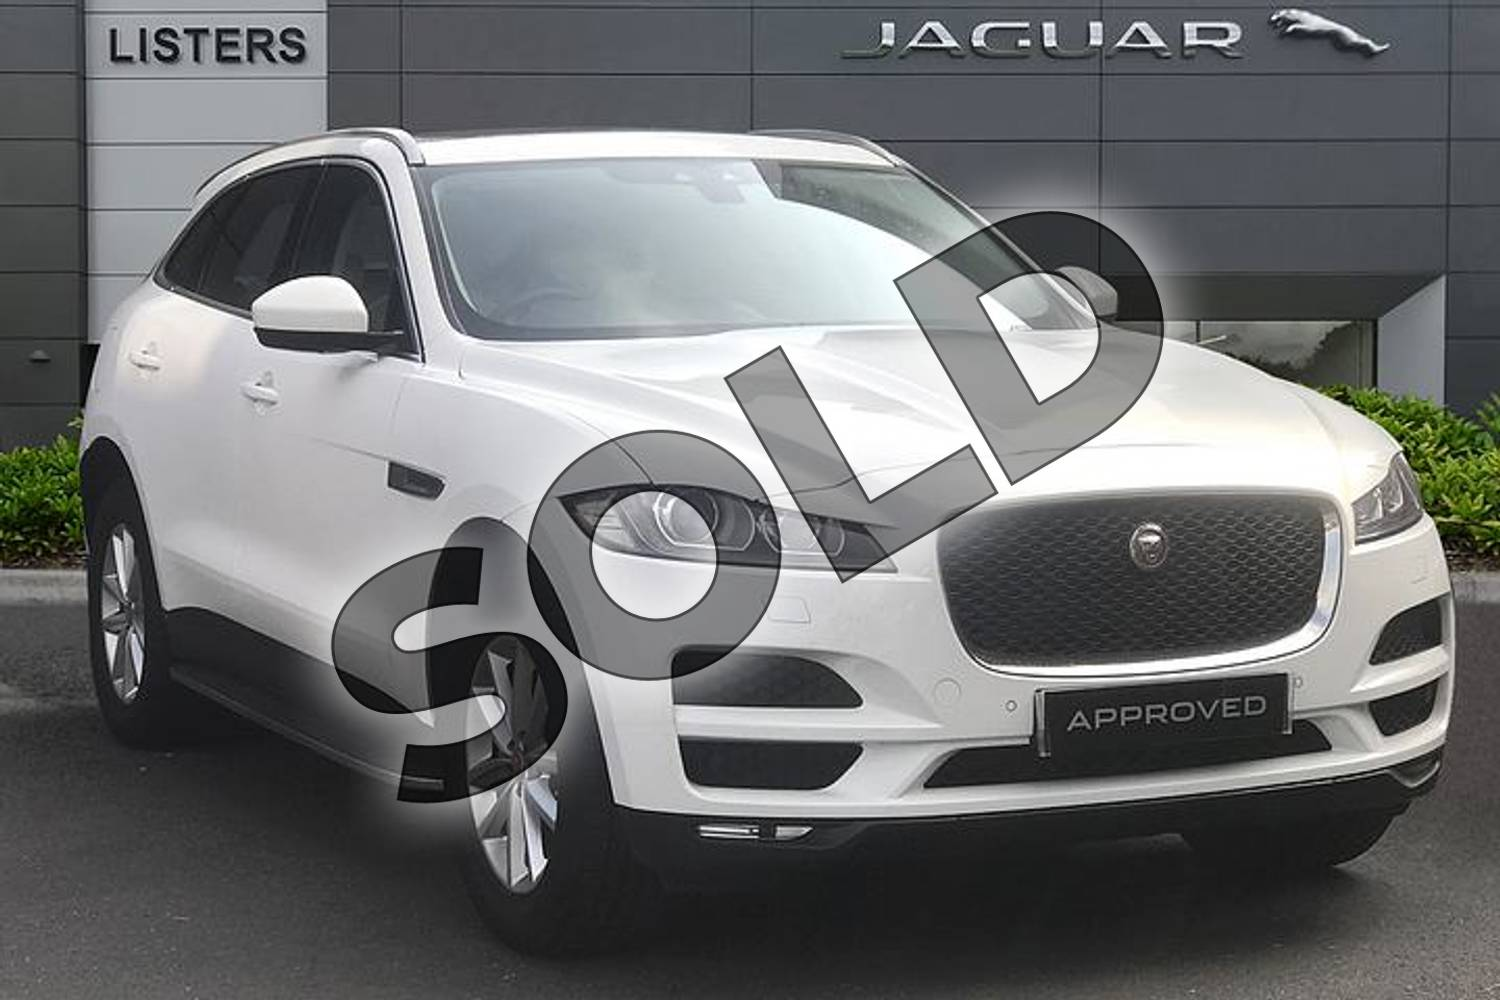 2019 Jaguar F-PACE Diesel Estate 2.0d Prestige 5dr Auto AWD in Fuji White at Listers Jaguar Droitwich